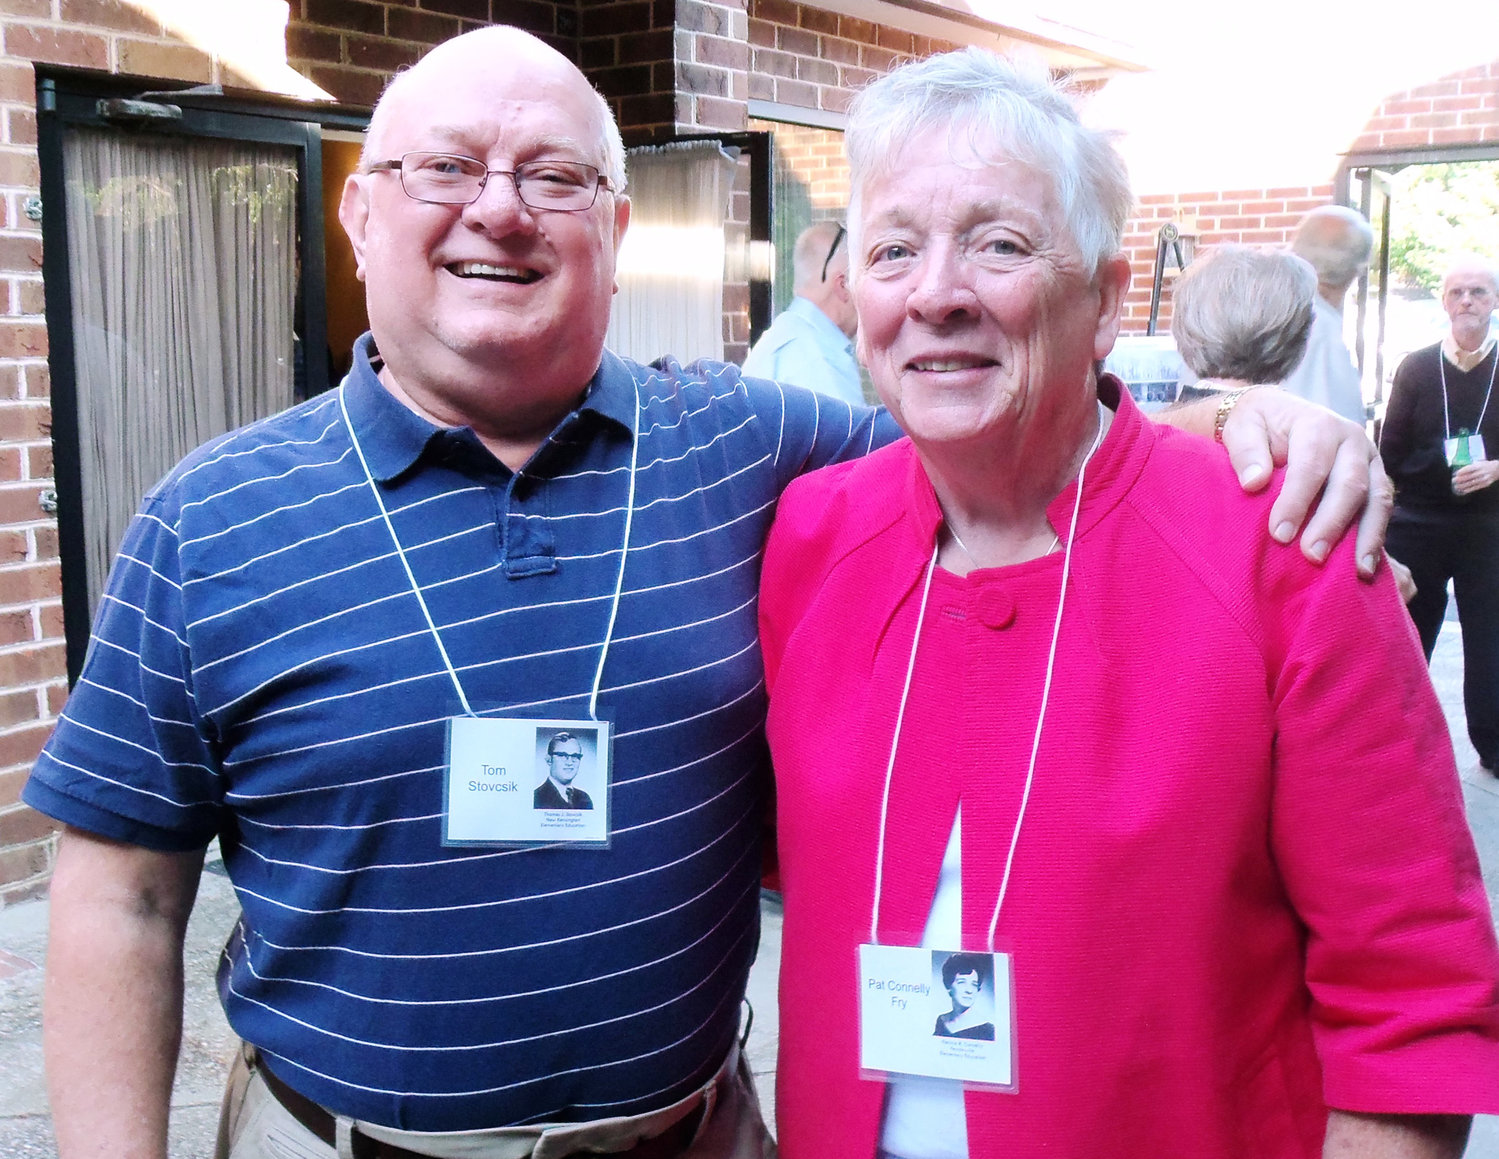 PSU Capitol Campus 1969 alumni Tom Stovicek and Pat Fry share memories at their 50th-year reunion held June 22 at the Sheraton Hershey Harrisburg in Swatara Township.